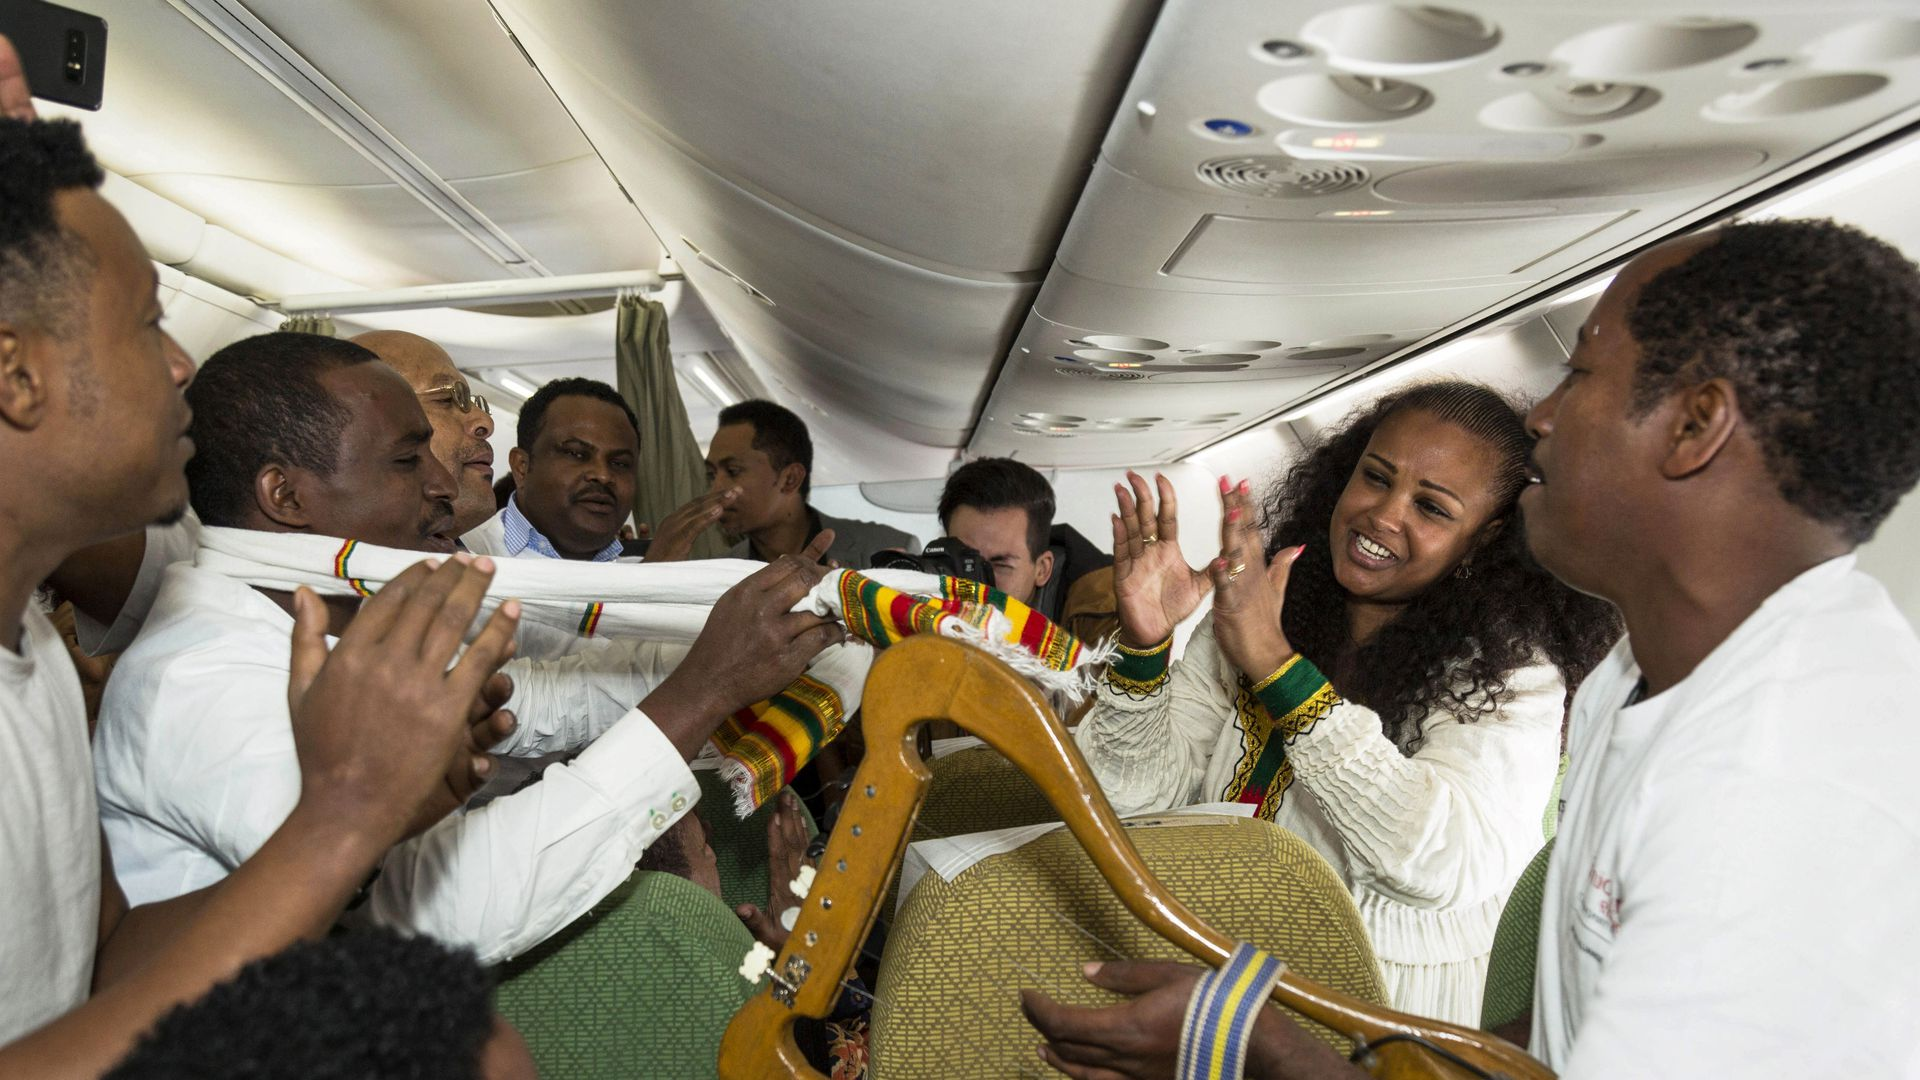 Passengers sing and dance during the first flight between the Ethiopian capital Addis Ababa and the Eritrean capital Asmara in twenty years. Photo: Michael Tewelde/AFP/Getty Images